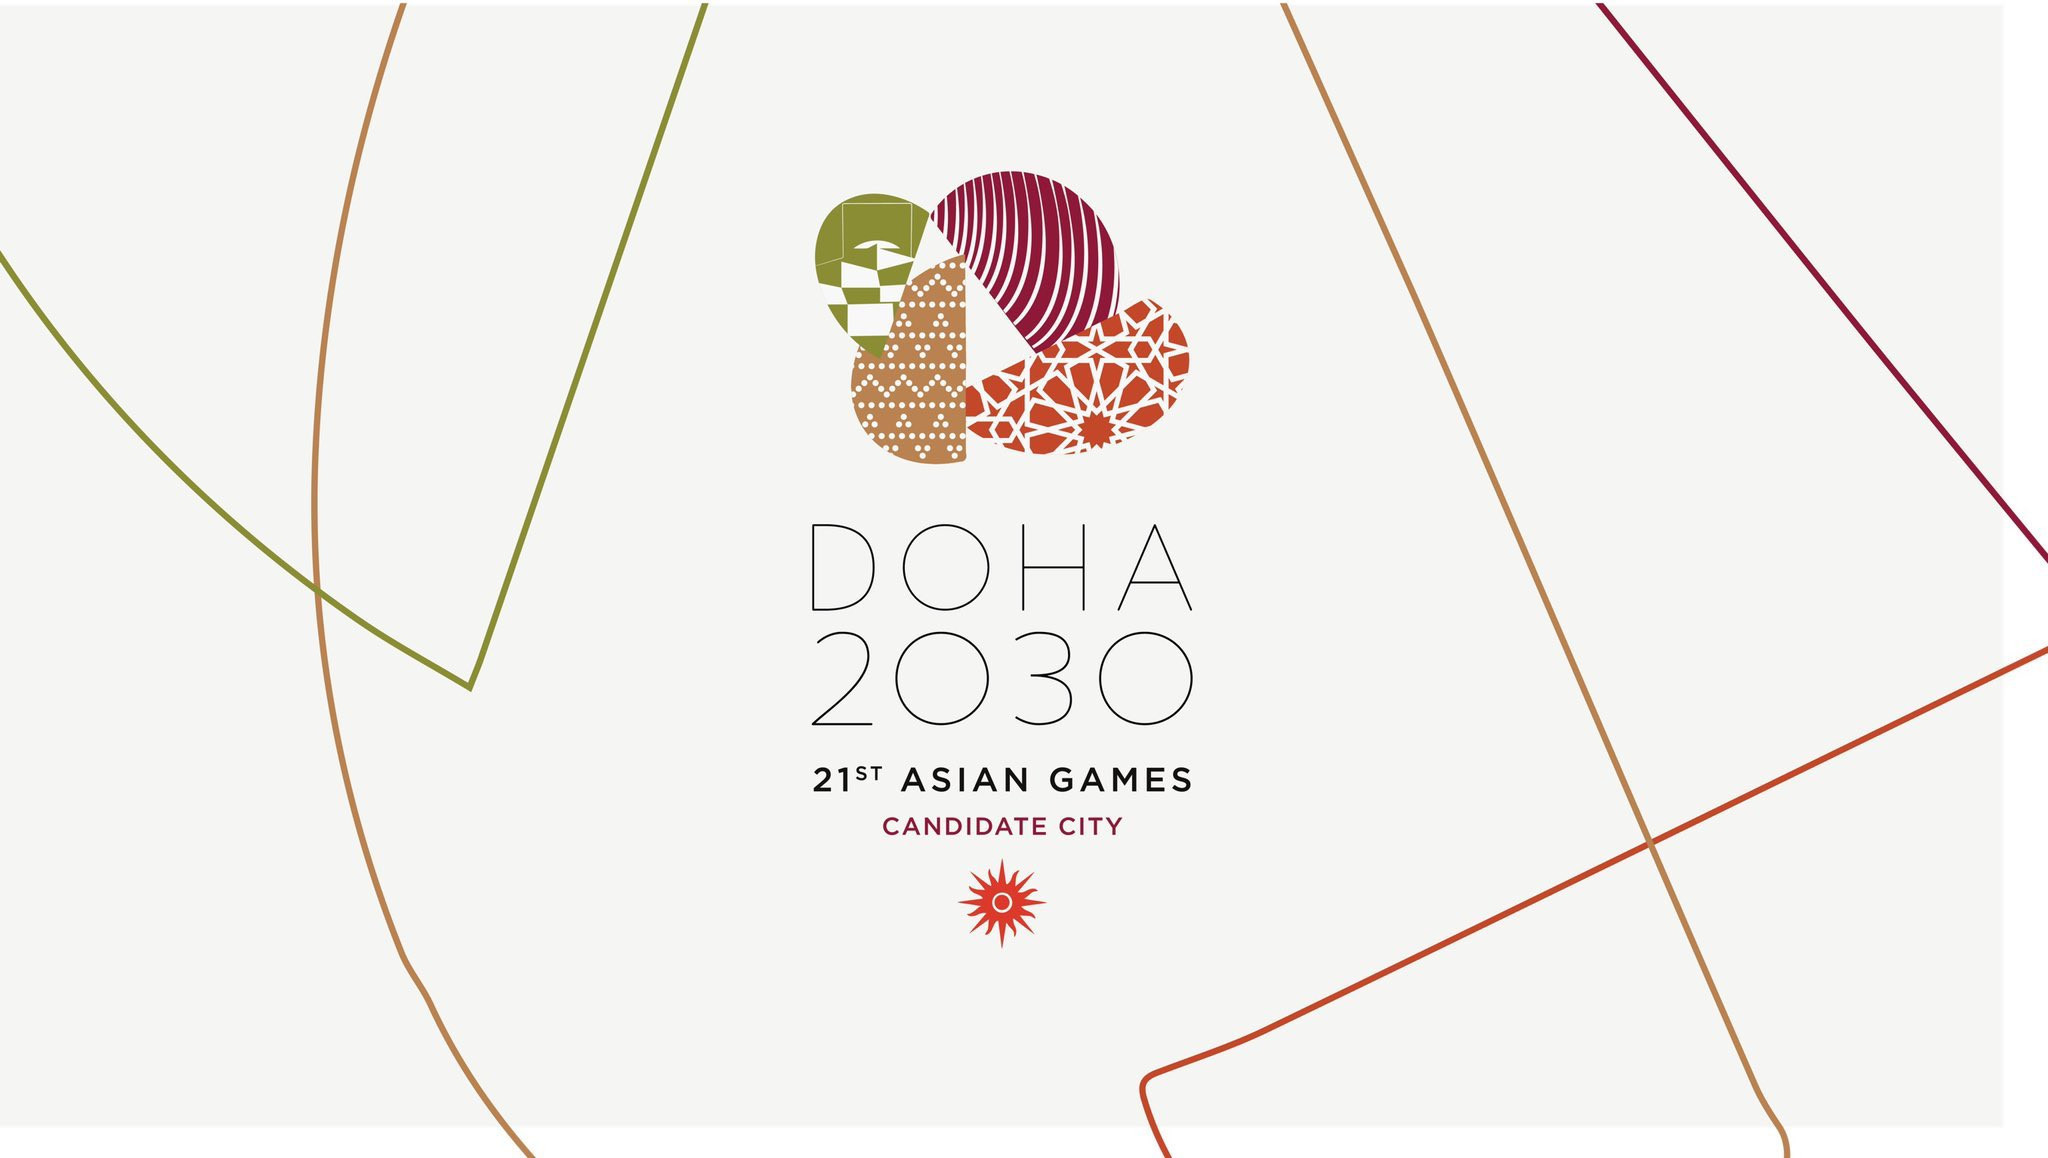 """Qatari officials claim the bid for Doha's 2030 Asian Games campaign """"reflect Qatar's combination of tradition and modernity and its commitment to hosting a magical"""